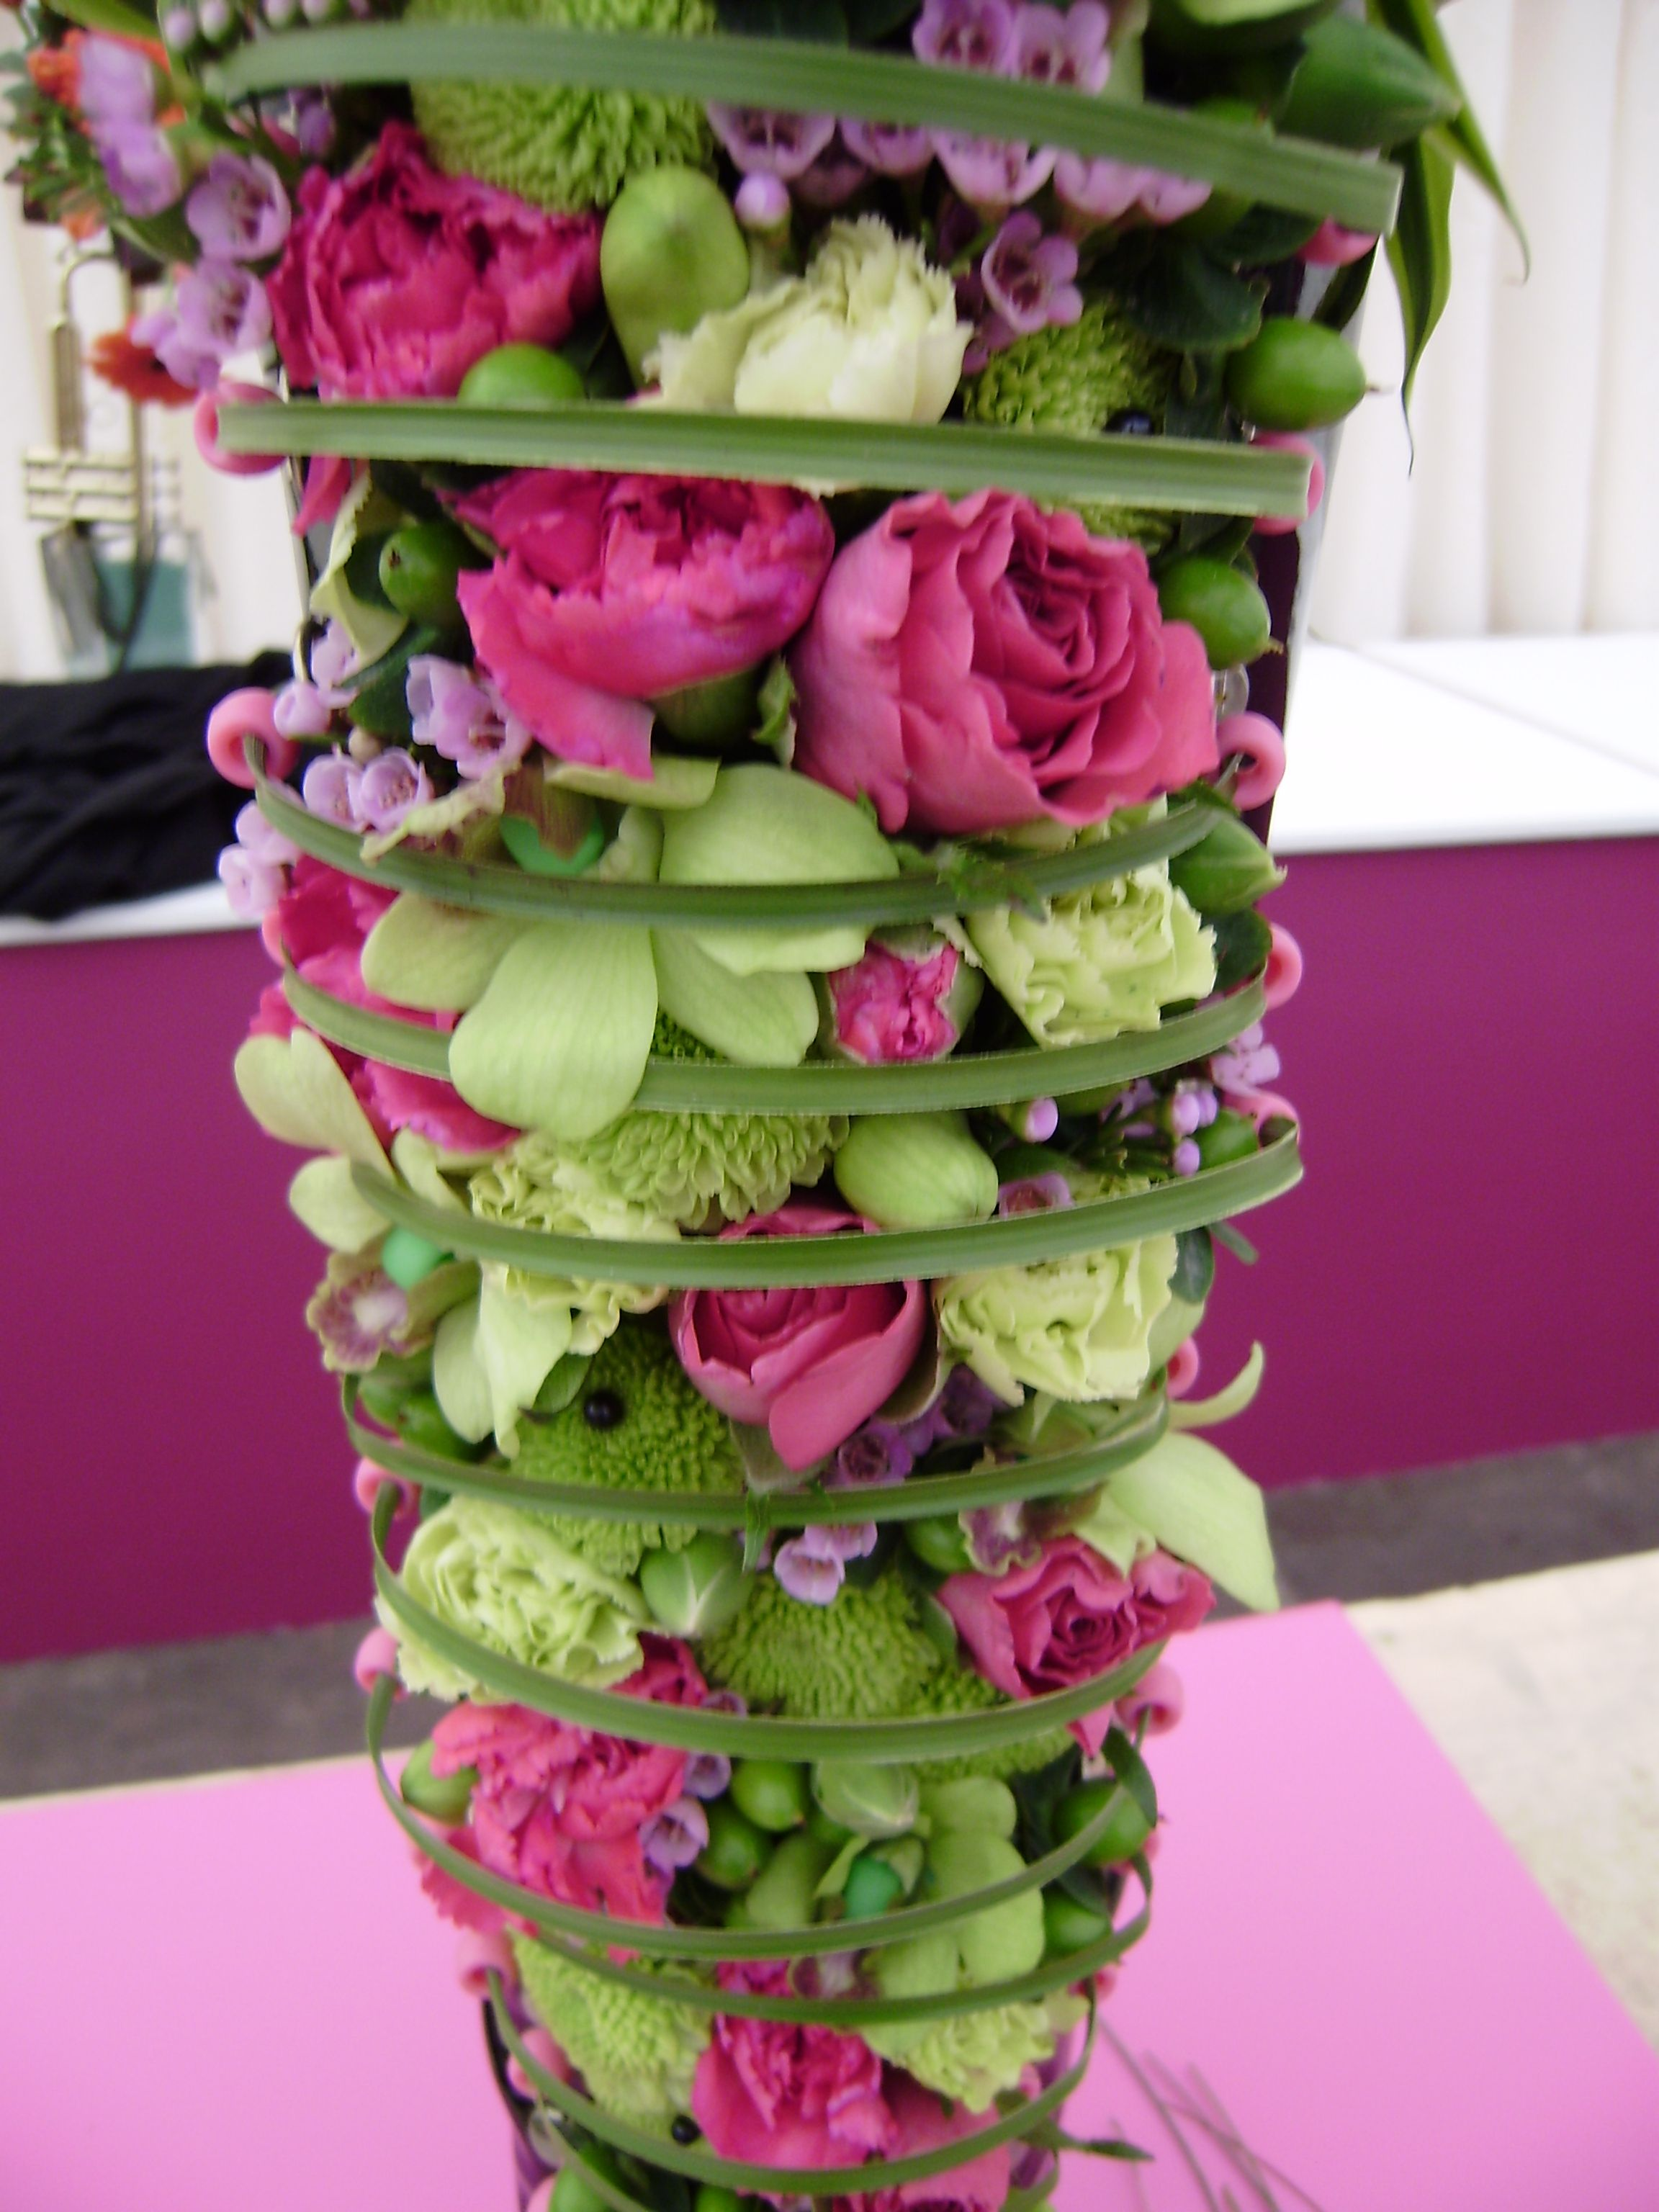 Stunning Competition Piece From Floristry Comp At Harrogate Spring